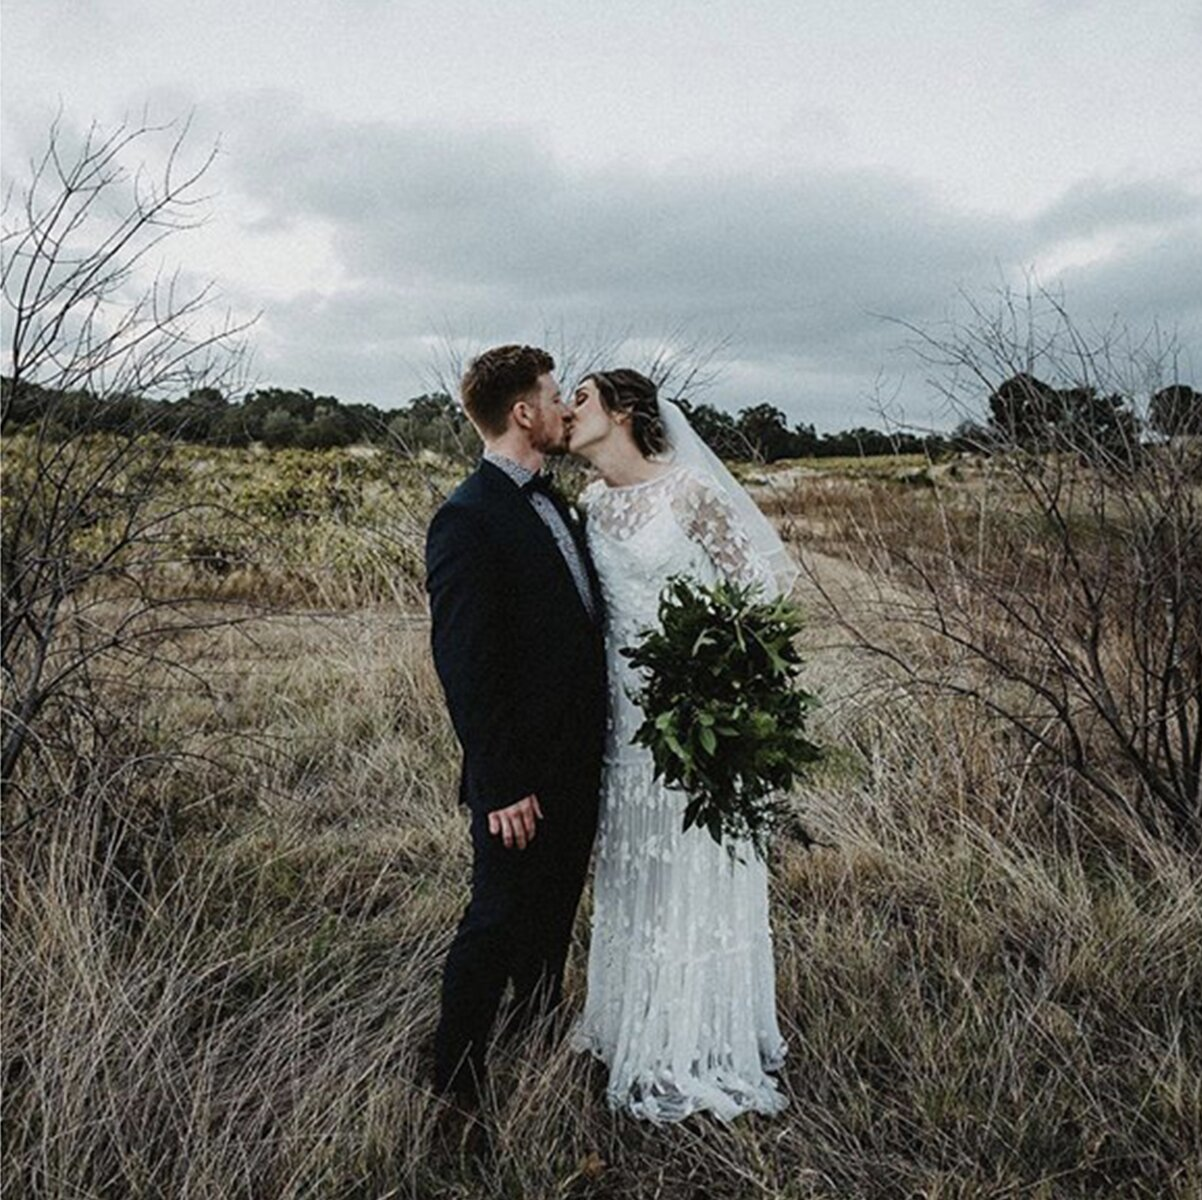 sydney-wedding-florist-flowers-packages-price-affordable-greenery-foliage